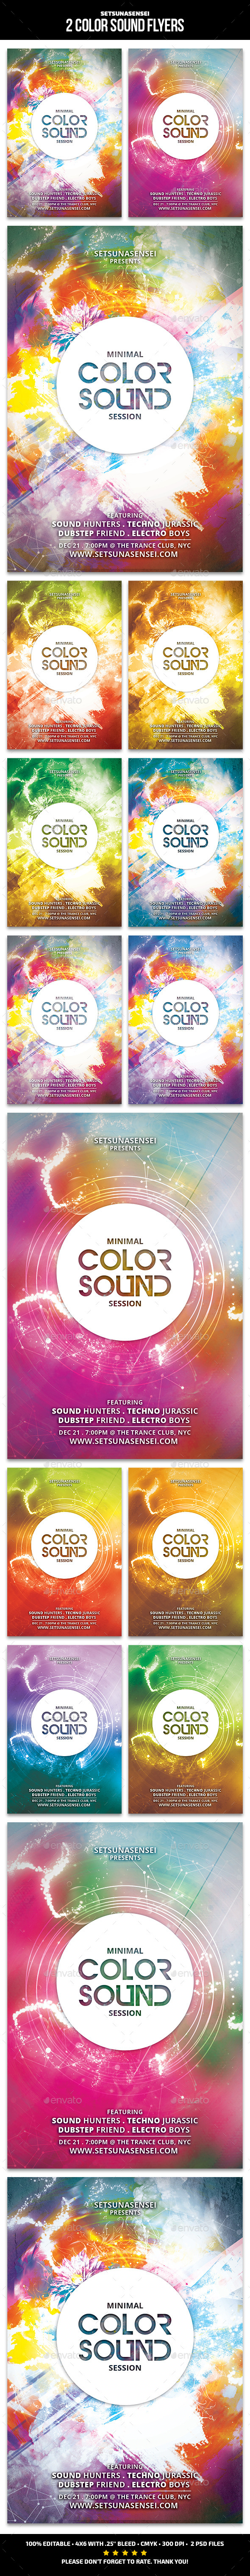 GraphicRiver 2 Color Sound Flyers 11369178